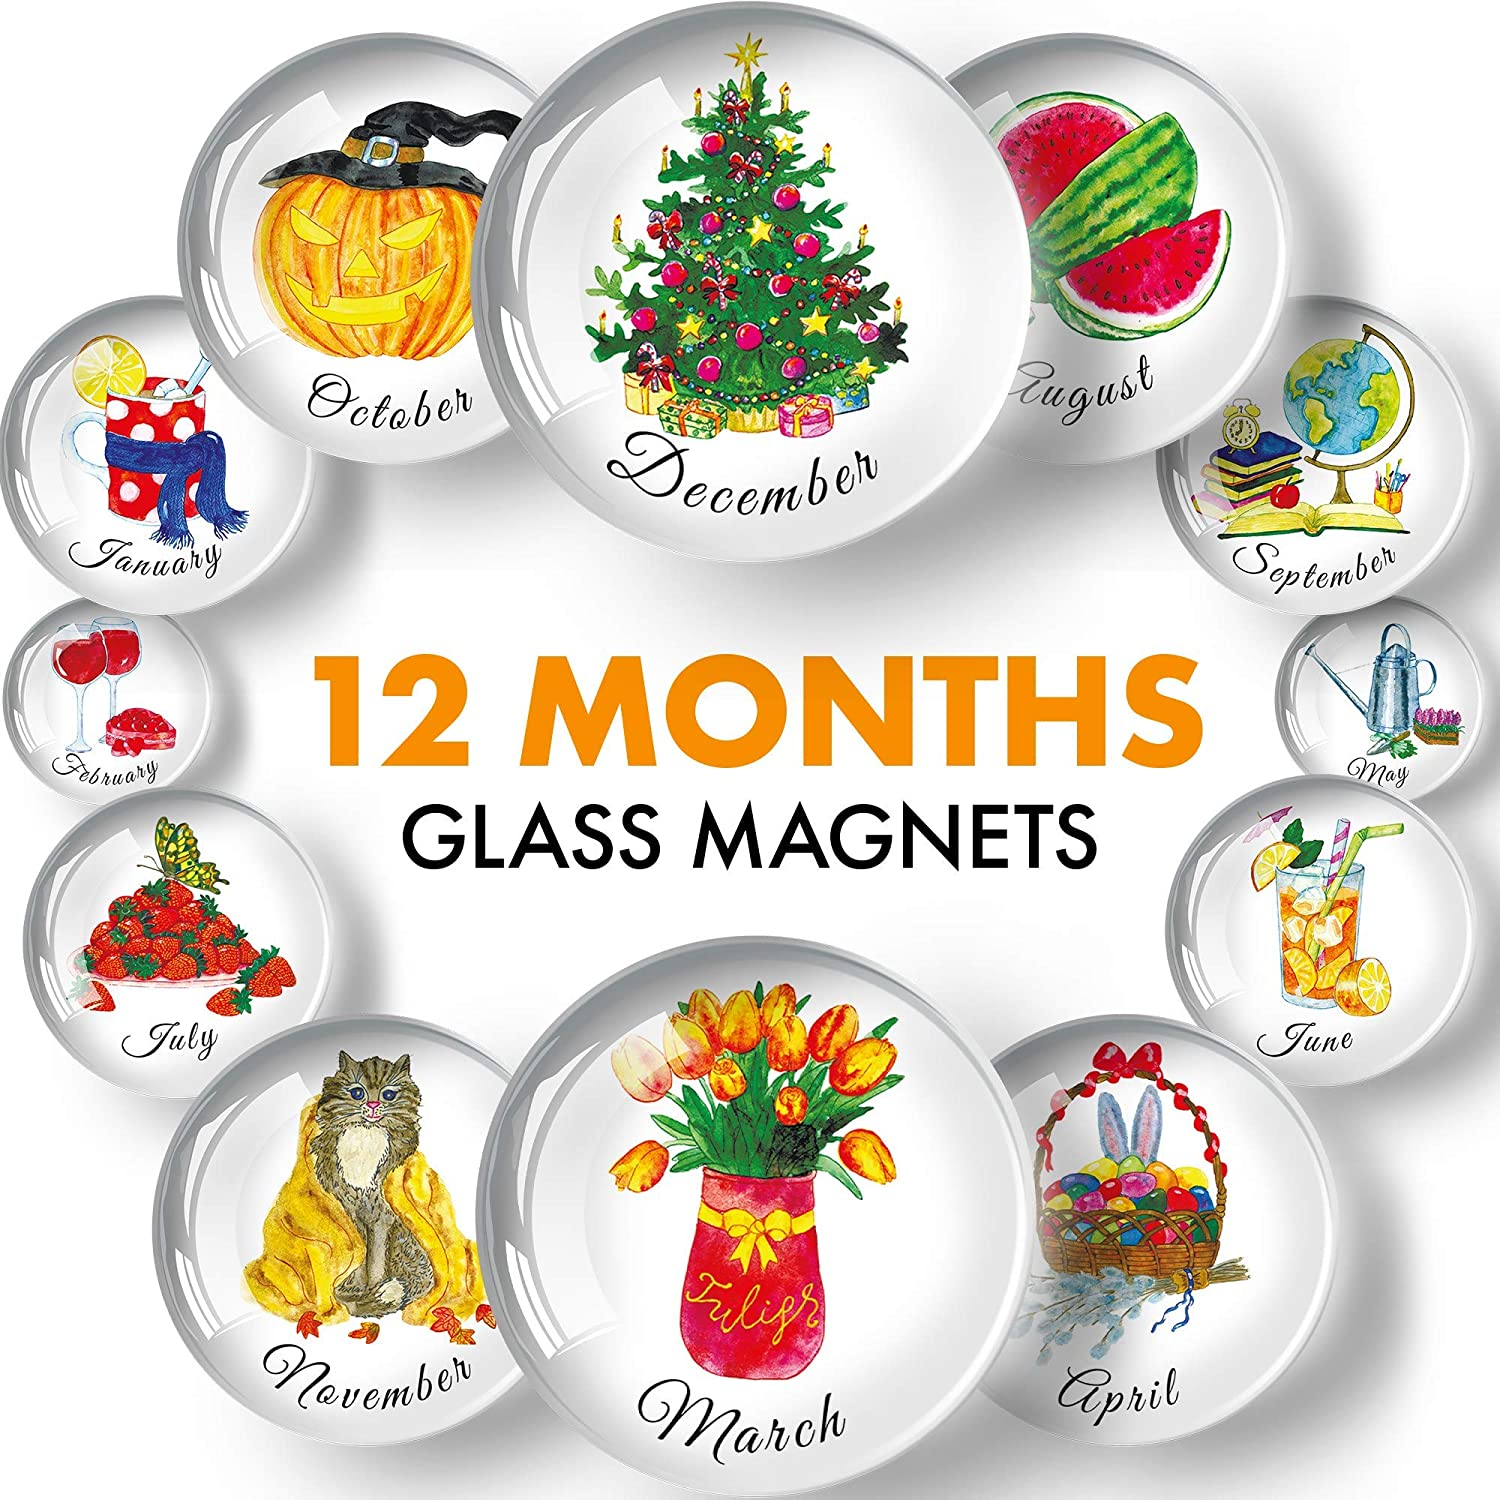 Glass Decorative Magnets for Refrigerator - Funny Fridge Magnets - Cute Locker Magnets for Boys and Girls - Succulent Refrigerator Magnets for Office and Kitchen